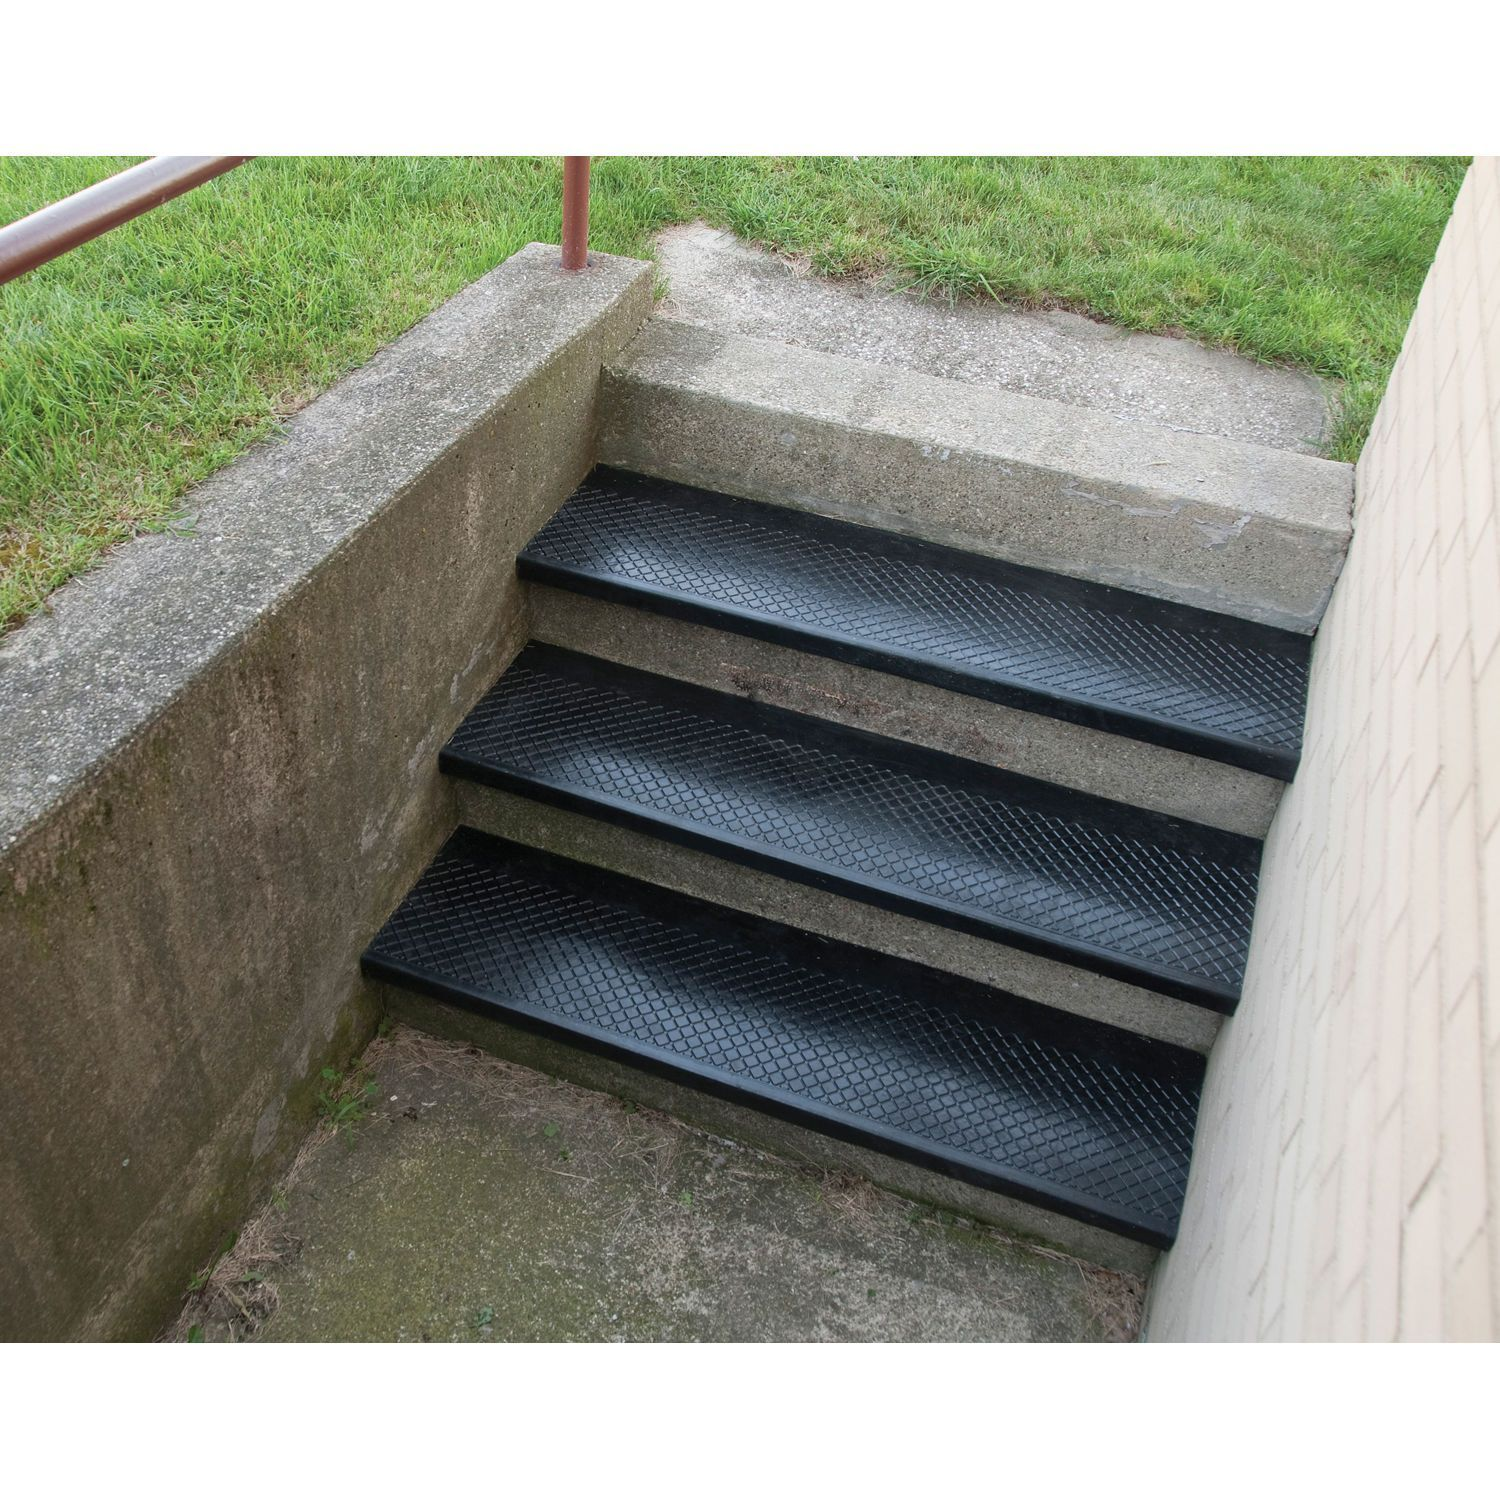 Flooring Carpeting Stair Treads Outdoor Recycled Rubber Stair Tread 48 W Black 443386 Globali Outdoor Stairs Outdoor Stair Railing Stair Tread Covers